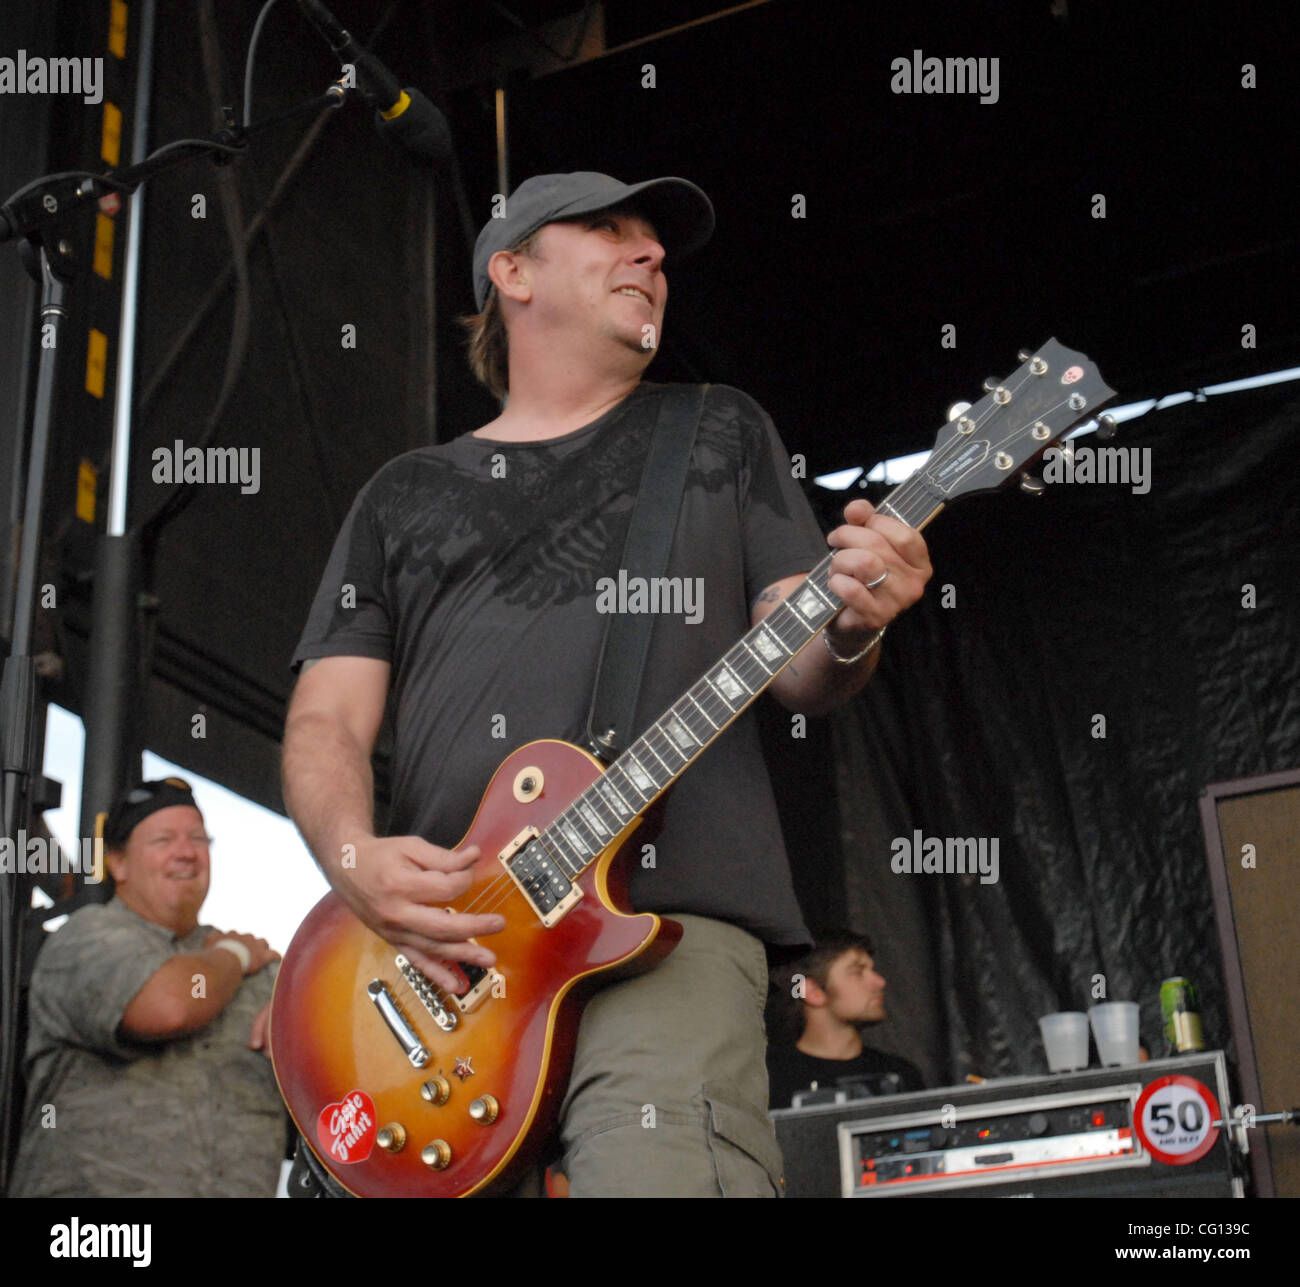 Jul. 23, 2007; Charlotte, NC USA; Guitarist BRIAN BAKER of the band BAD RELIGION performs live as part of the 13th - Stock Image